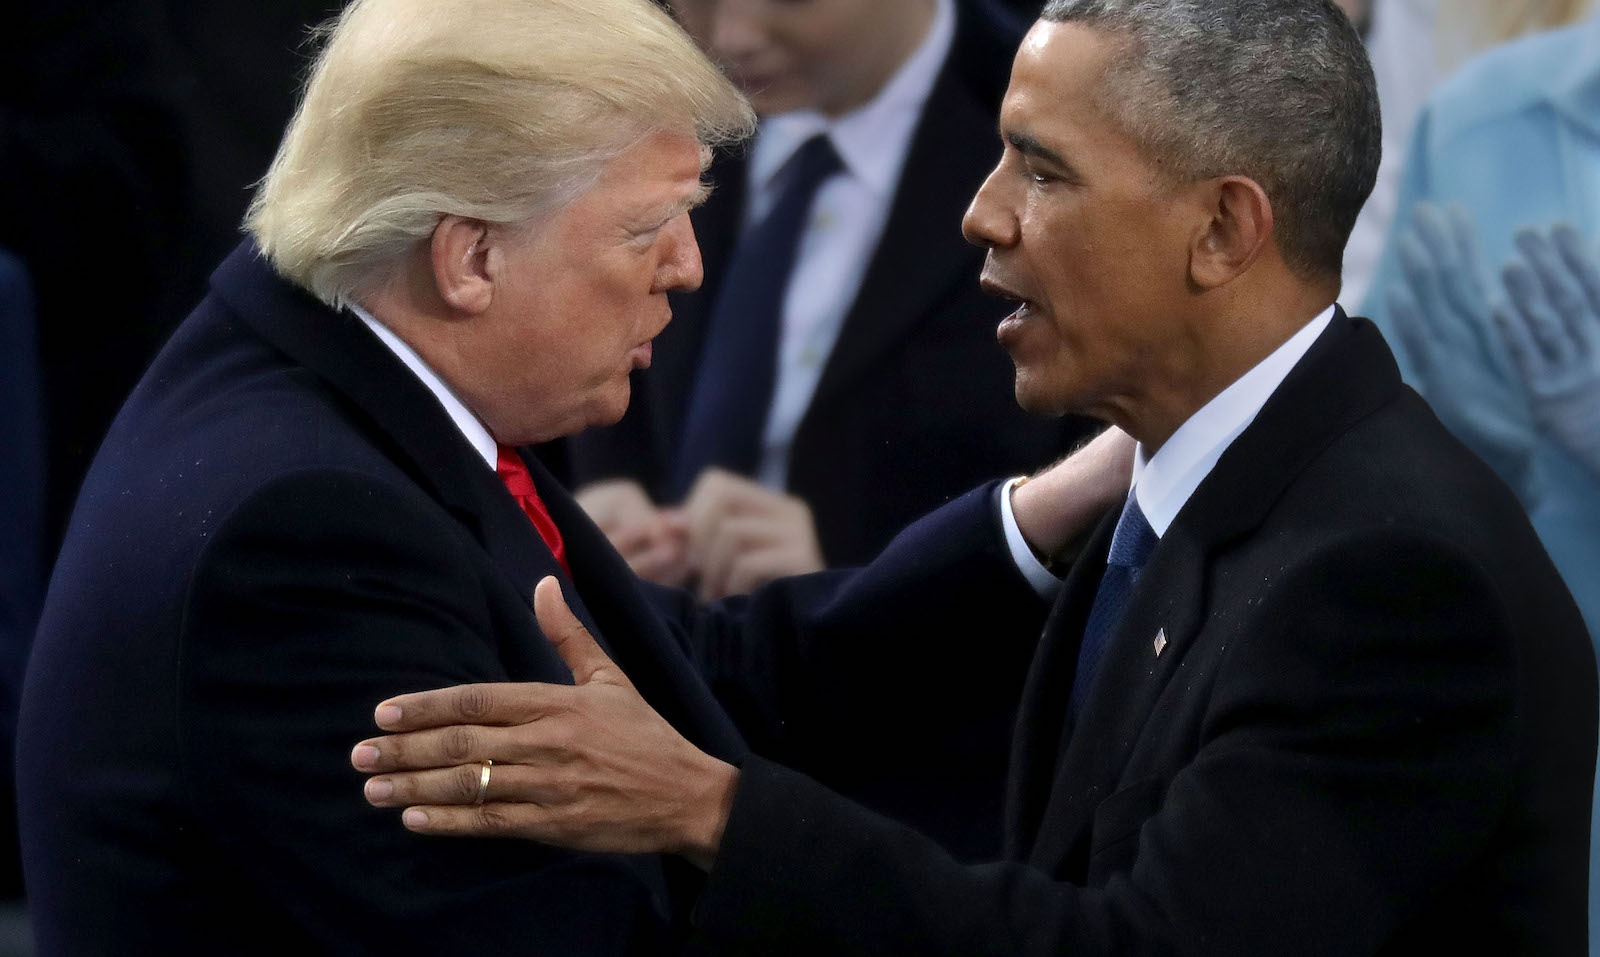 Former US president Barack Obama and US President Donald Trump, 20 January 2017 (Photo: Chip Somodevilla/Getty)